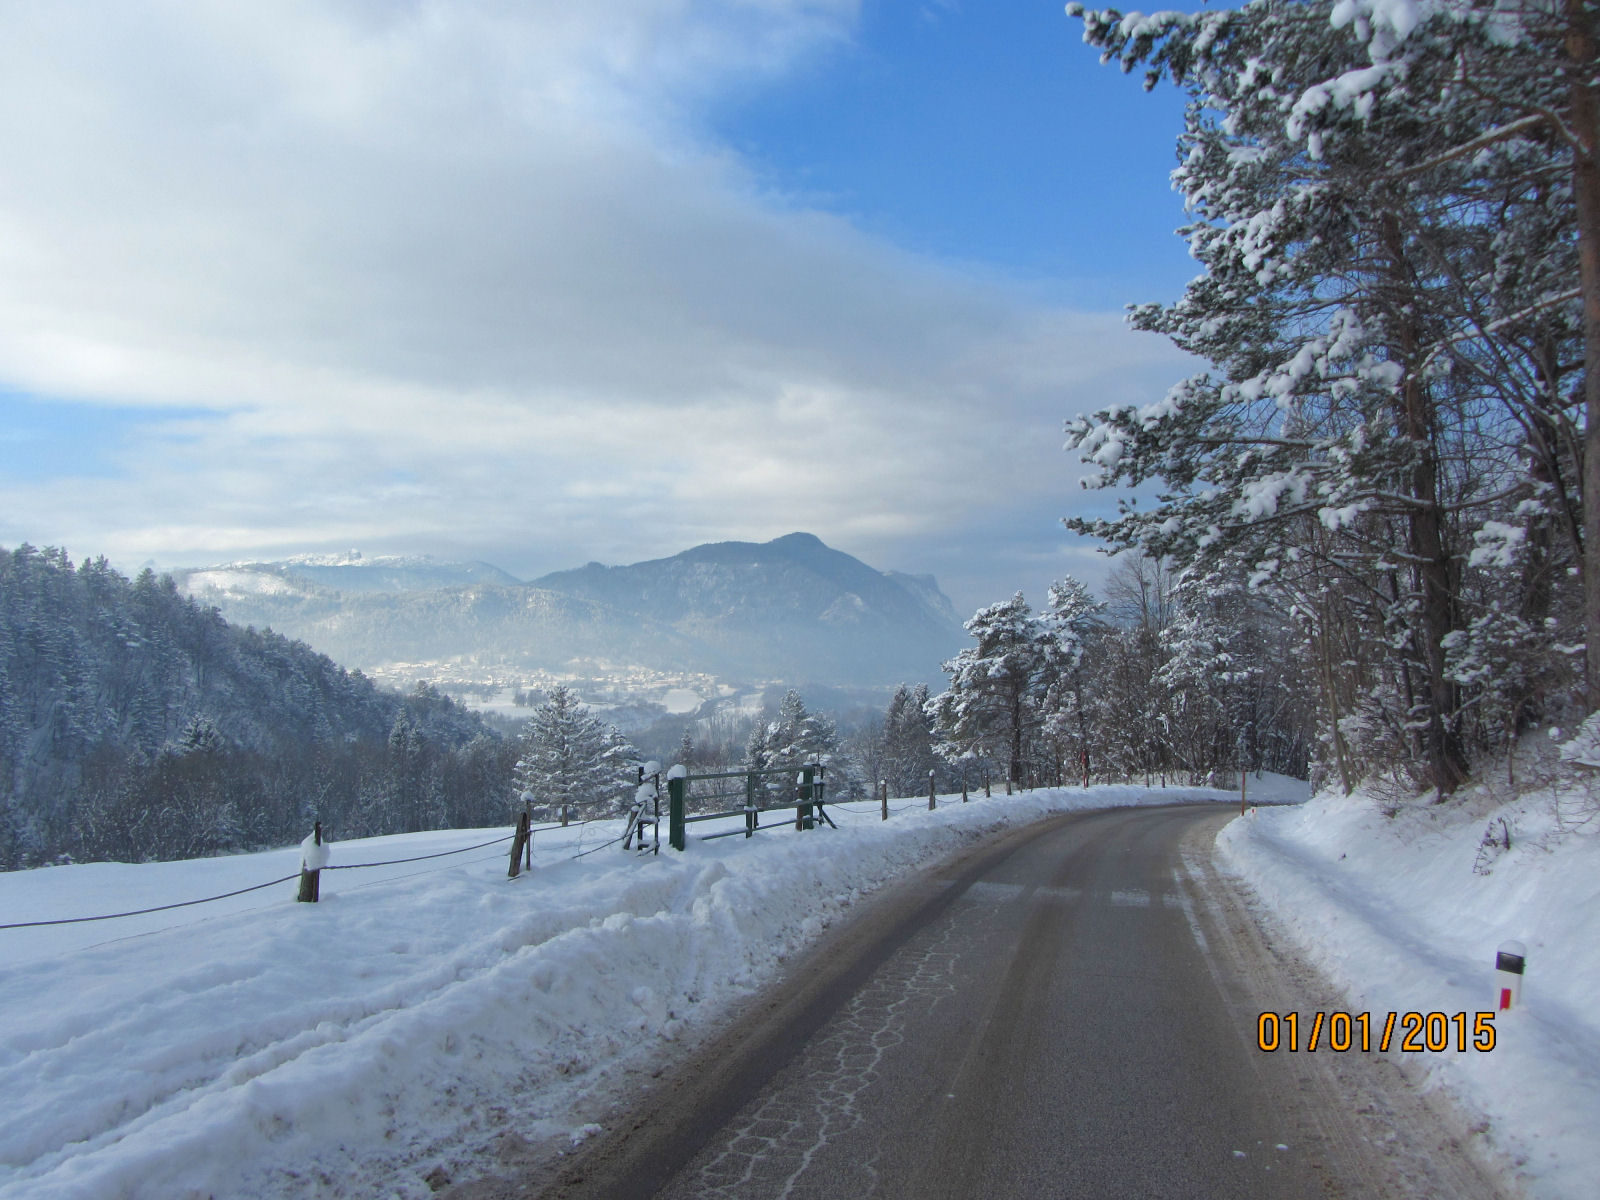 Slovenian Alps in winter